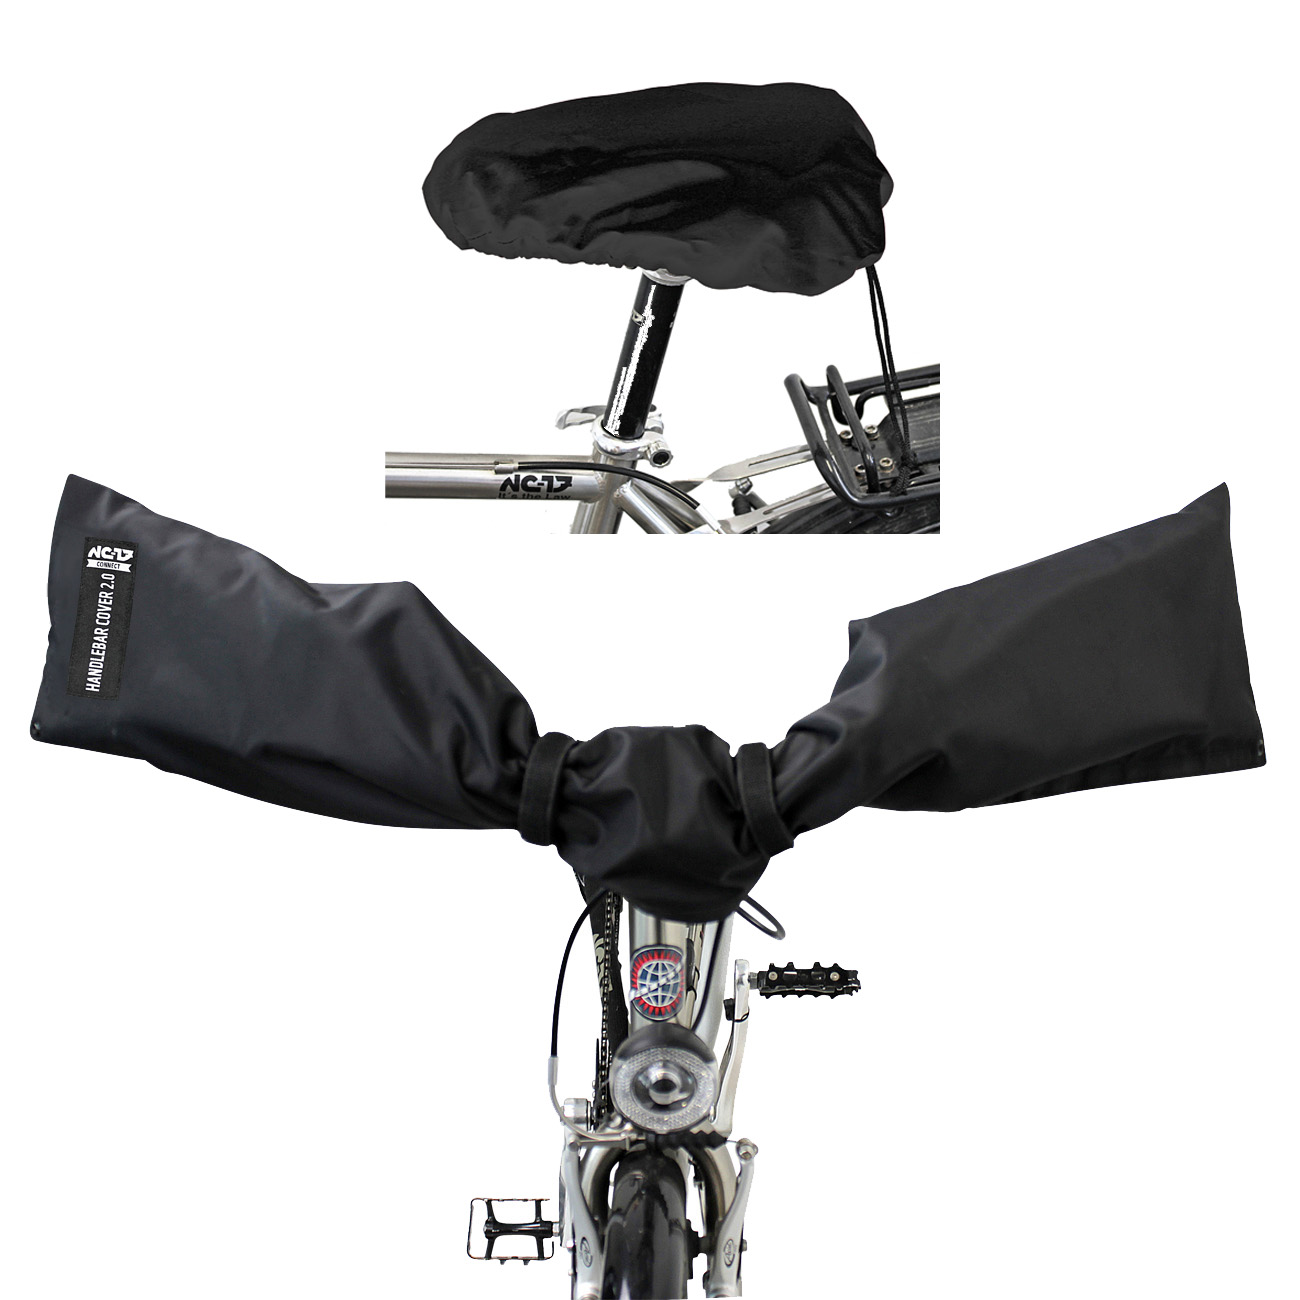 NC-17 Connect Handlebar + Seat Cover 2.0<br/>on size fits all, schwarz<br/>&nbsp;&nbsp;